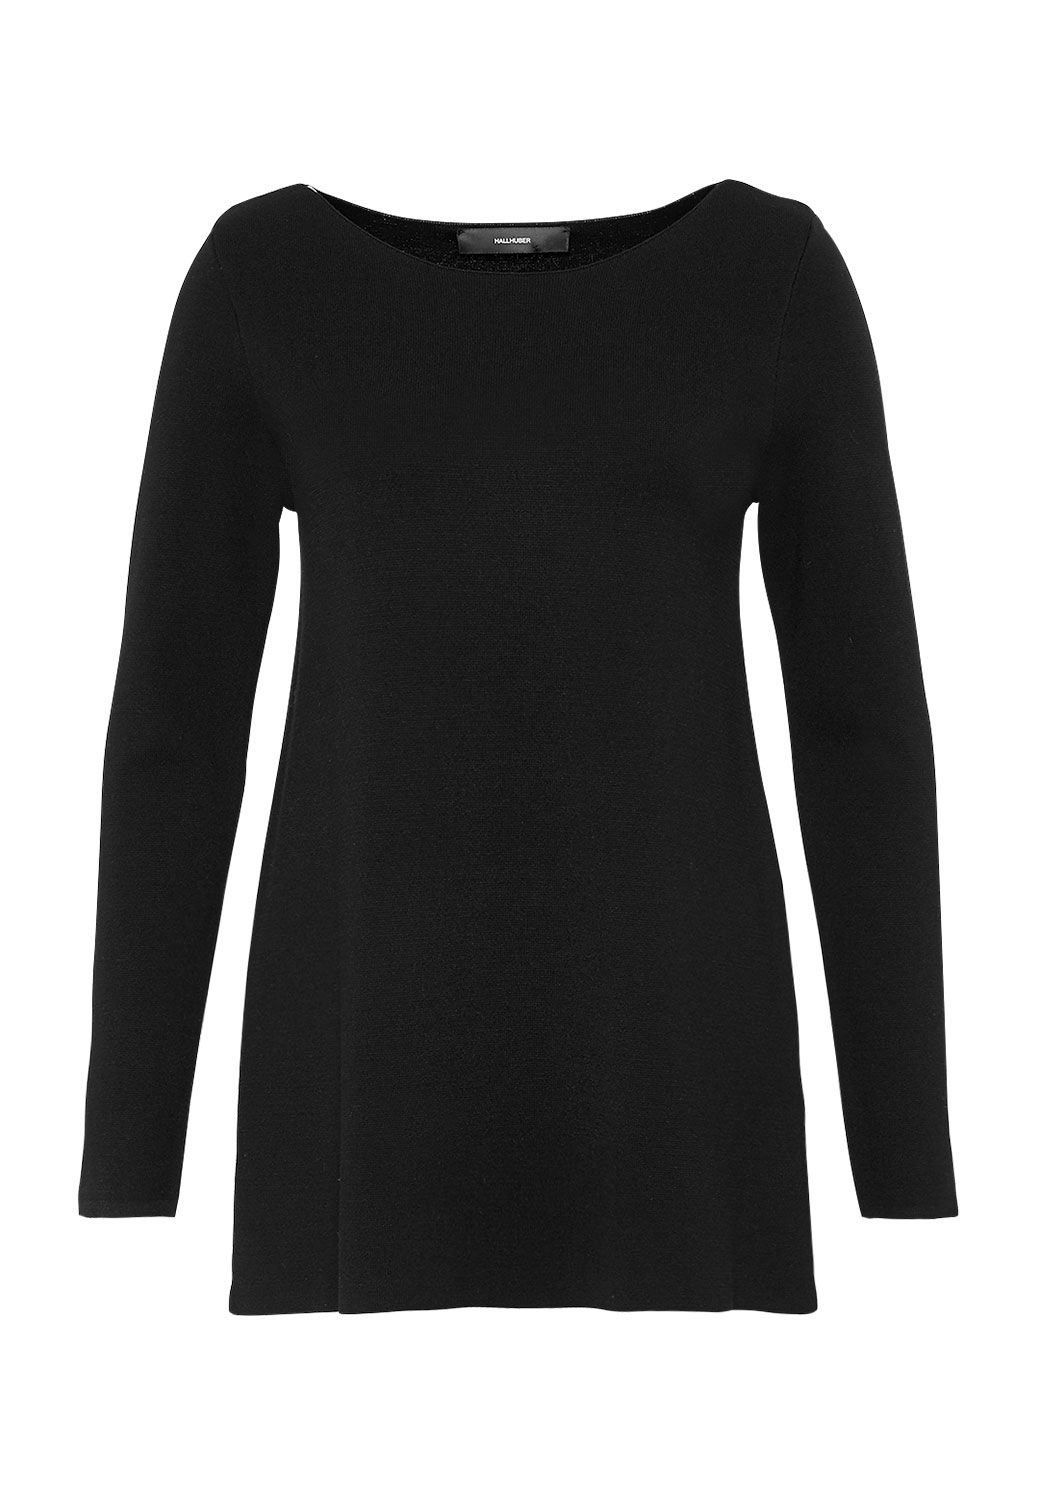 Hallhuber Hallhuber Boat neck jumper with A-line cut, Black